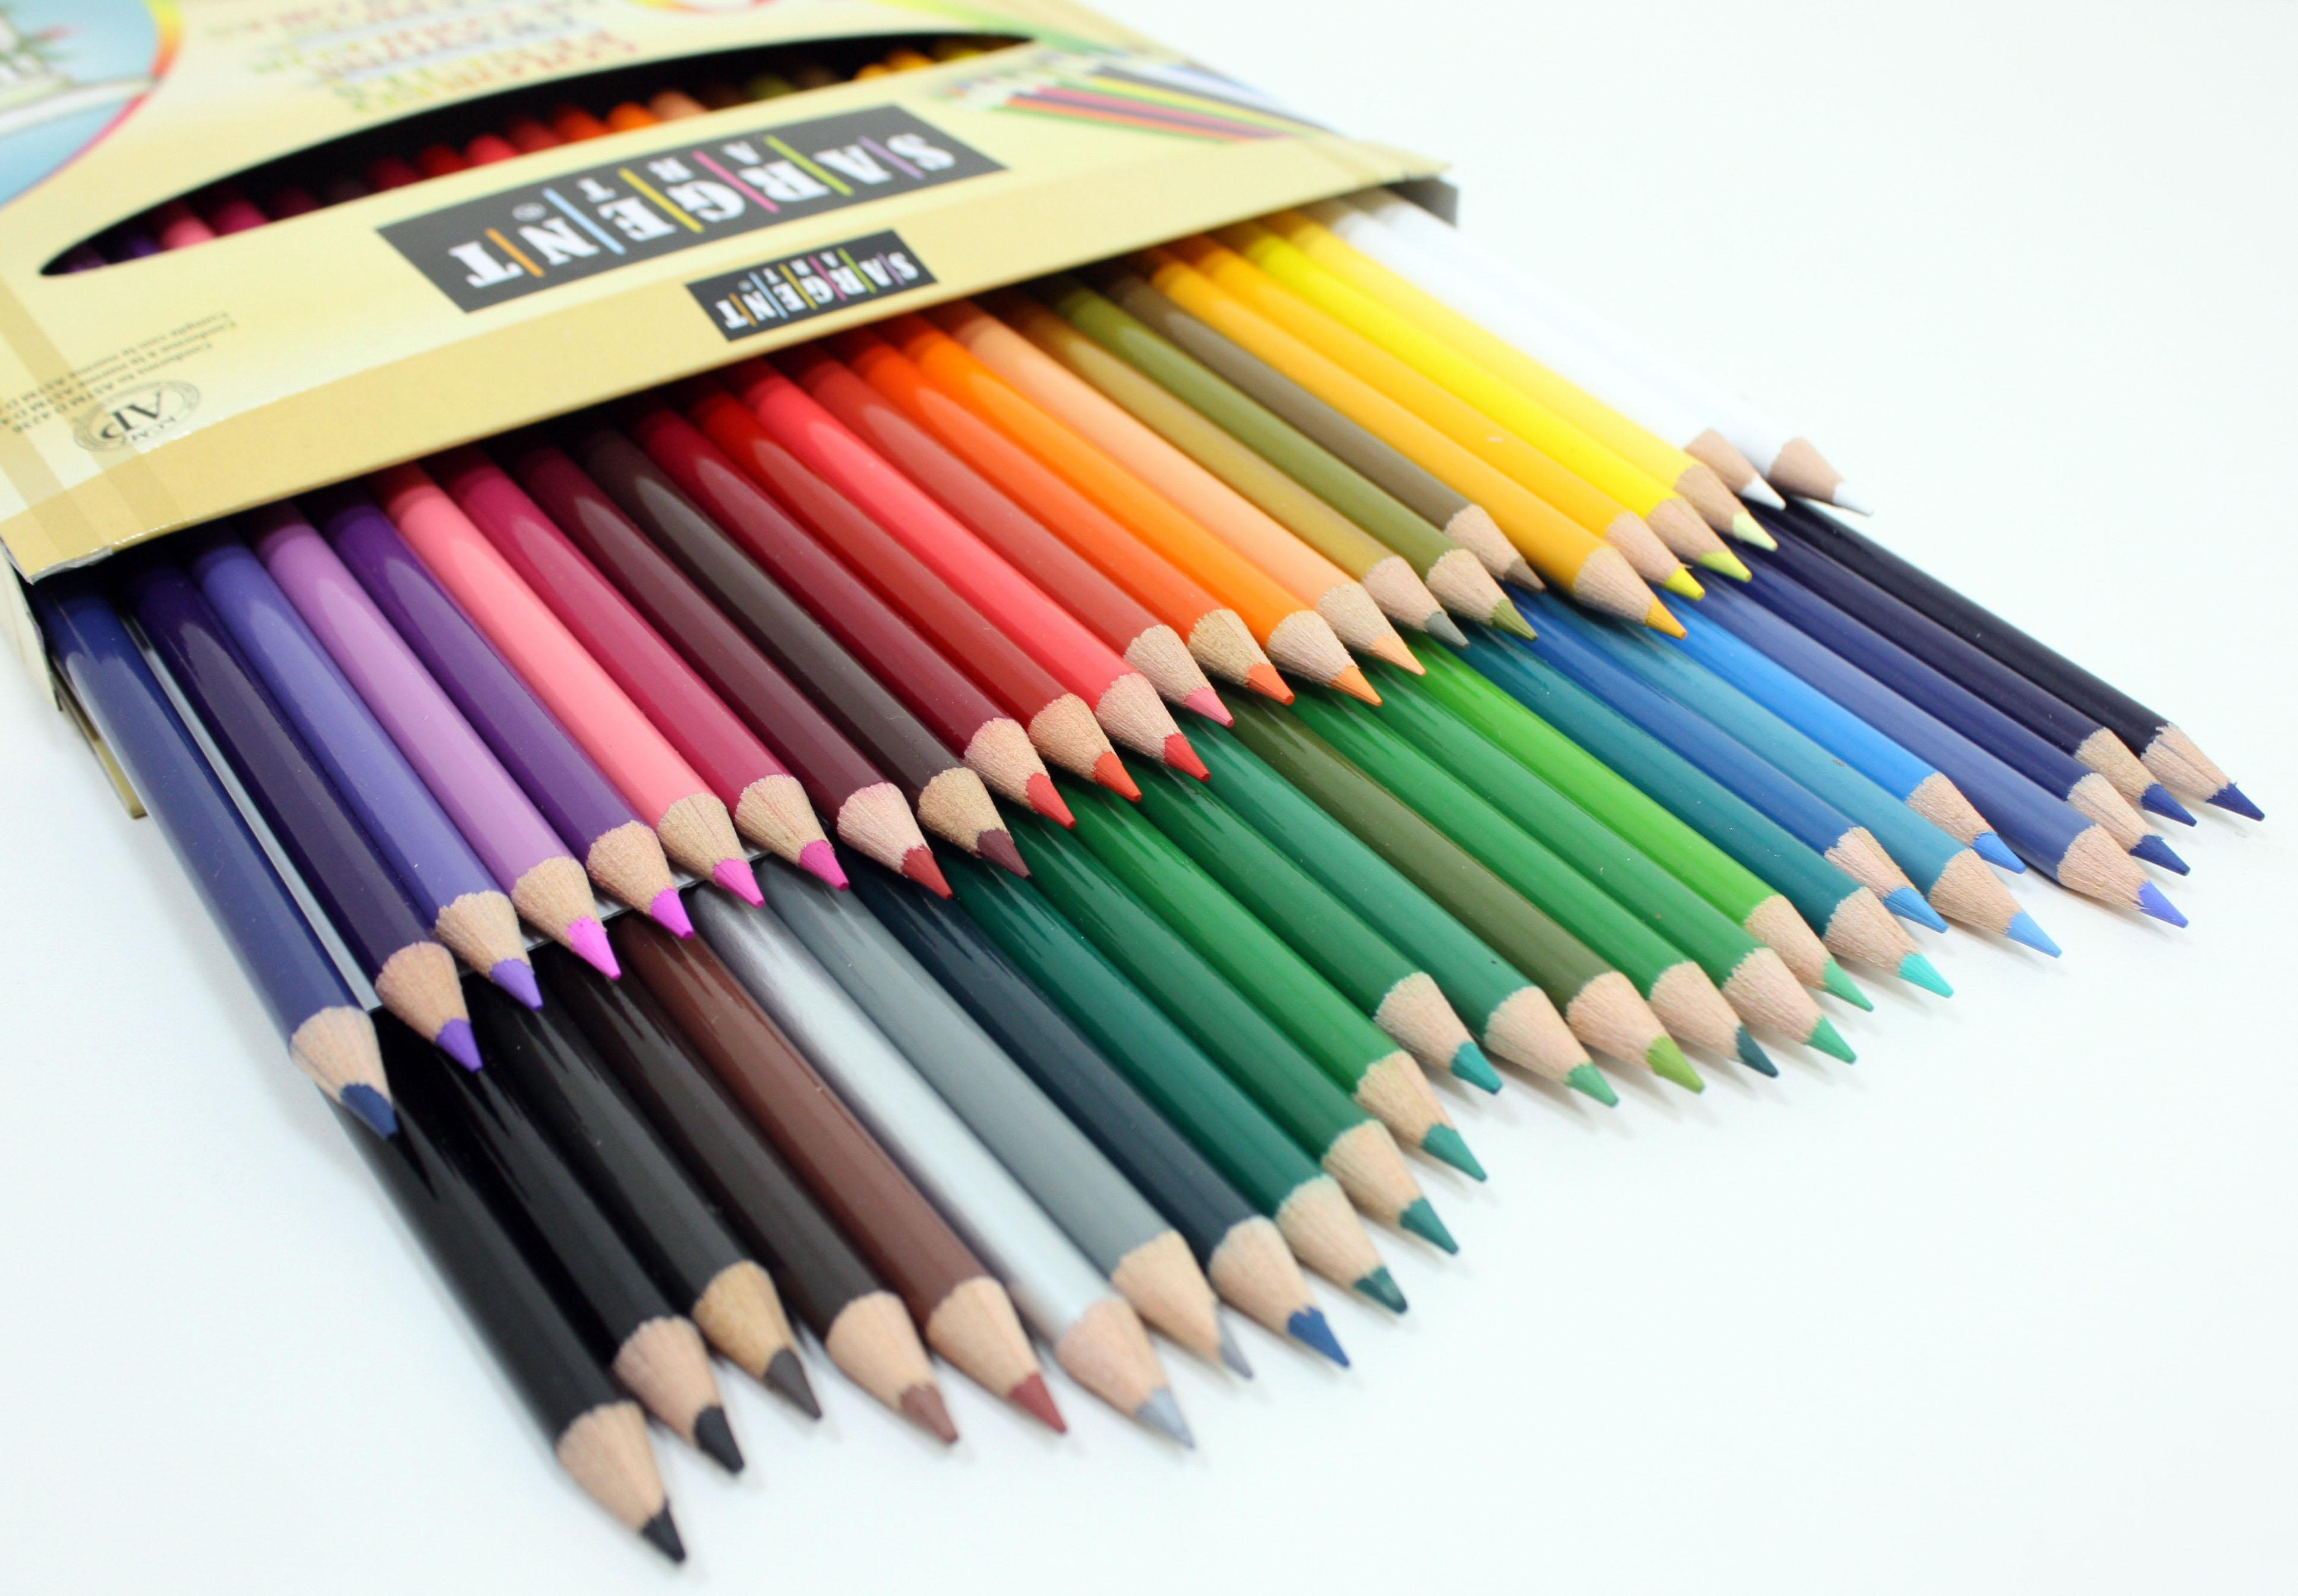 amazoncom sargent art 227251 colored pencils pack of